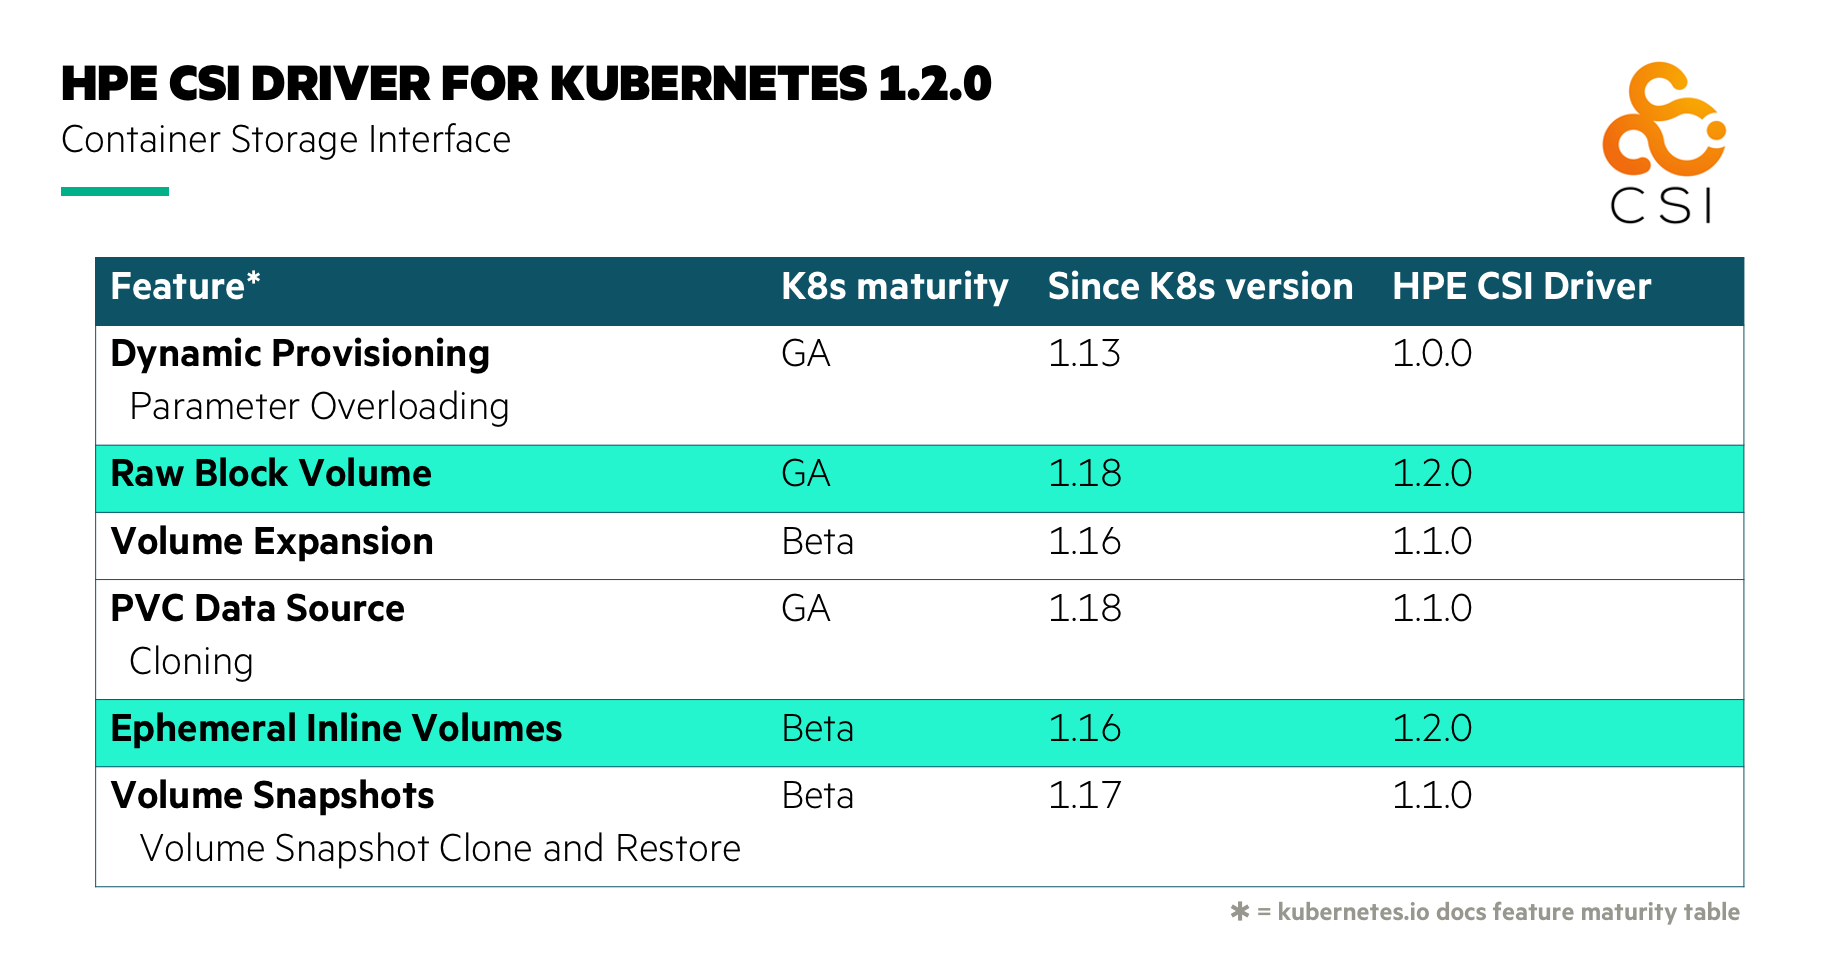 HPE CSI Driver for Kubernetes. New features highlighted!